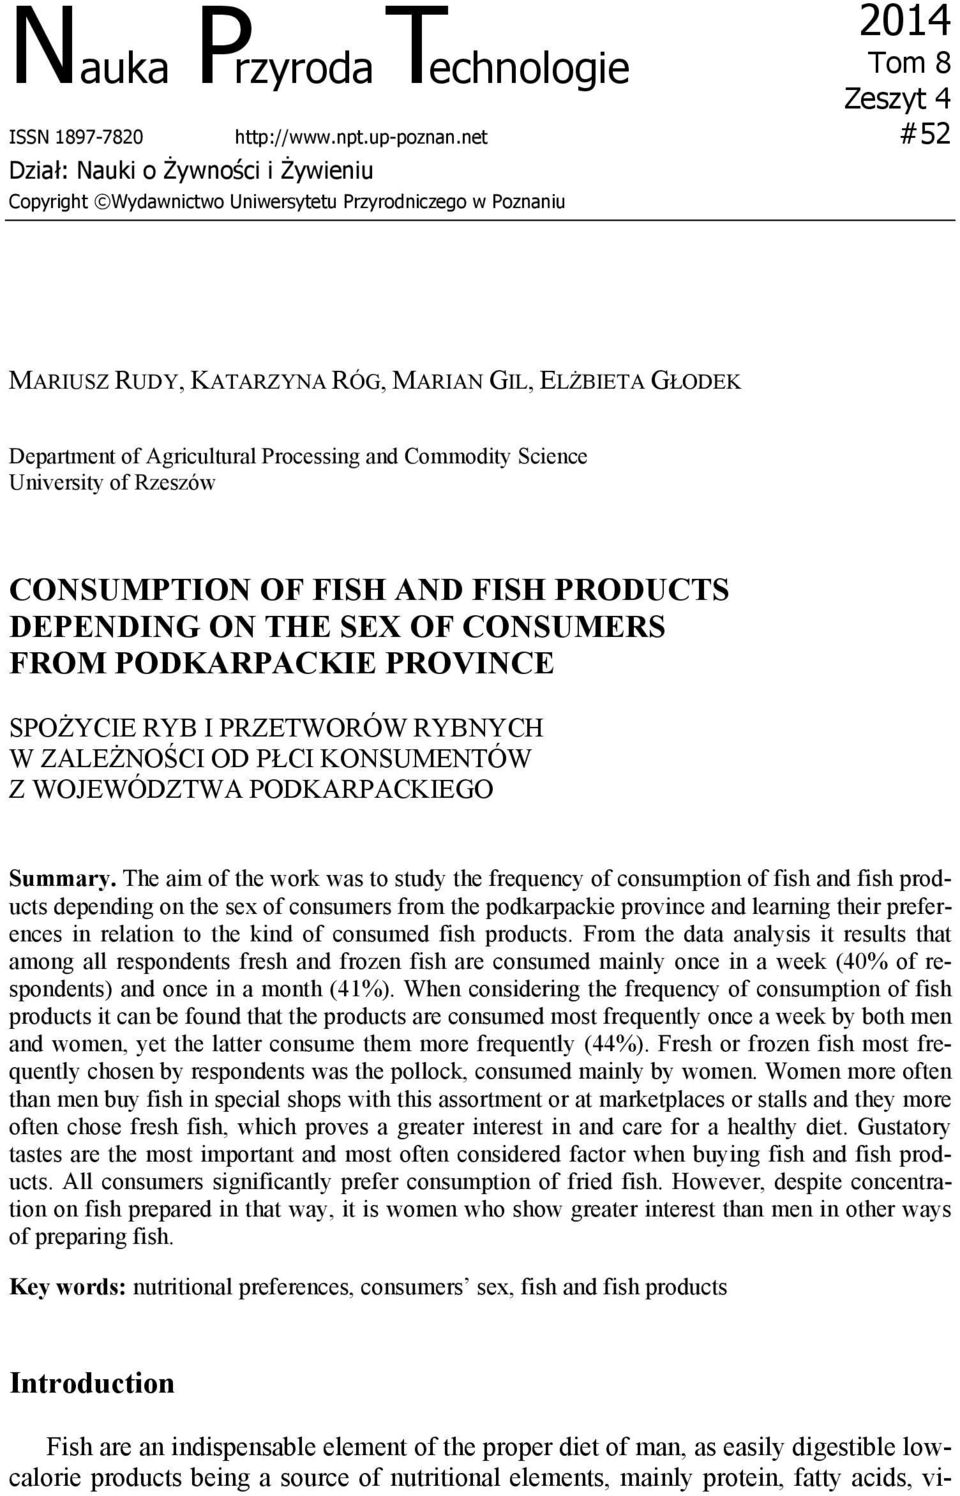 and Commodity Science University of Rzeszów CONSUMPTION OF FISH AND FISH PRODUCTS DEPENDING ON THE SEX OF CONSUMERS FROM PODKARPACKIE PROVINCE SPOŻYCIE RYB I PRZETWORÓW RYBNYCH W ZALEŻNOŚCI OD PŁCI